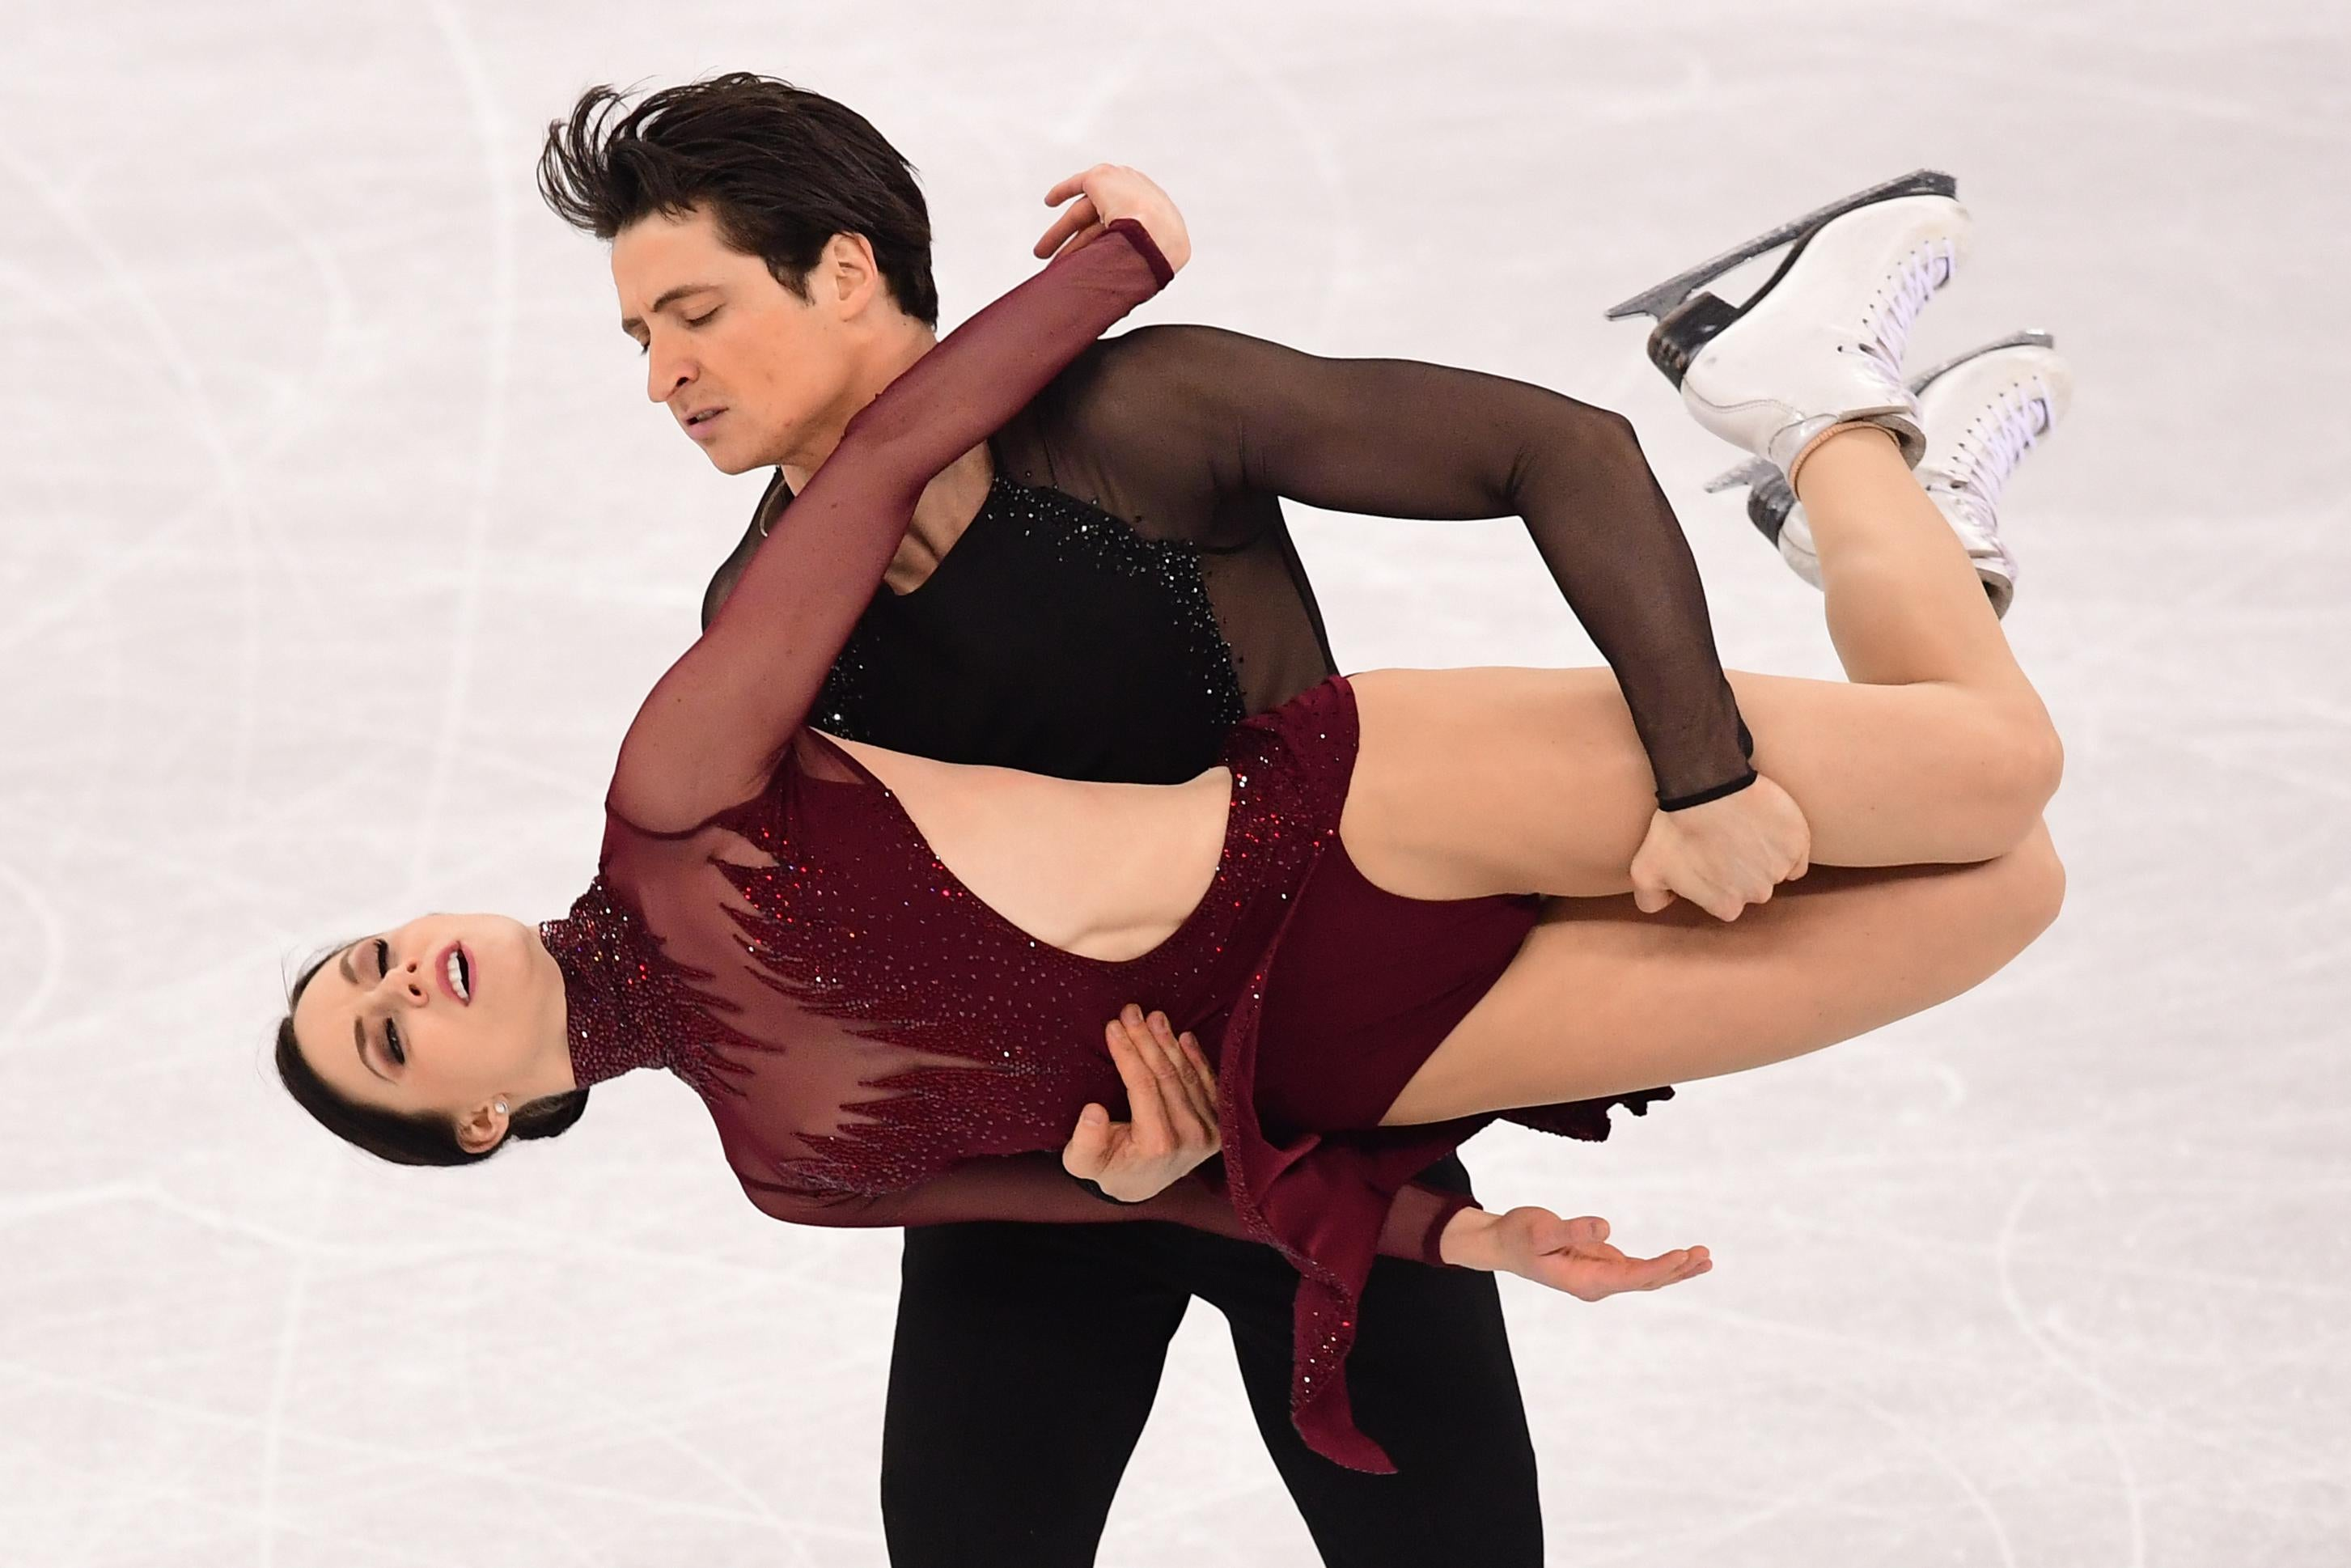 TOPSHOT - Canada's Tessa Virtue and Canada's Scott Moir compete in the ice dance free dance of the figure skating event during the Pyeongchang 2018 Winter Olympic Games at the Gangneung Ice Arena in Gangneung on February 20, 2018. / AFP PHOTO / Roberto SCHMIDT        (Photo credit should read ROBERTO SCHMIDT/AFP/Getty Images)